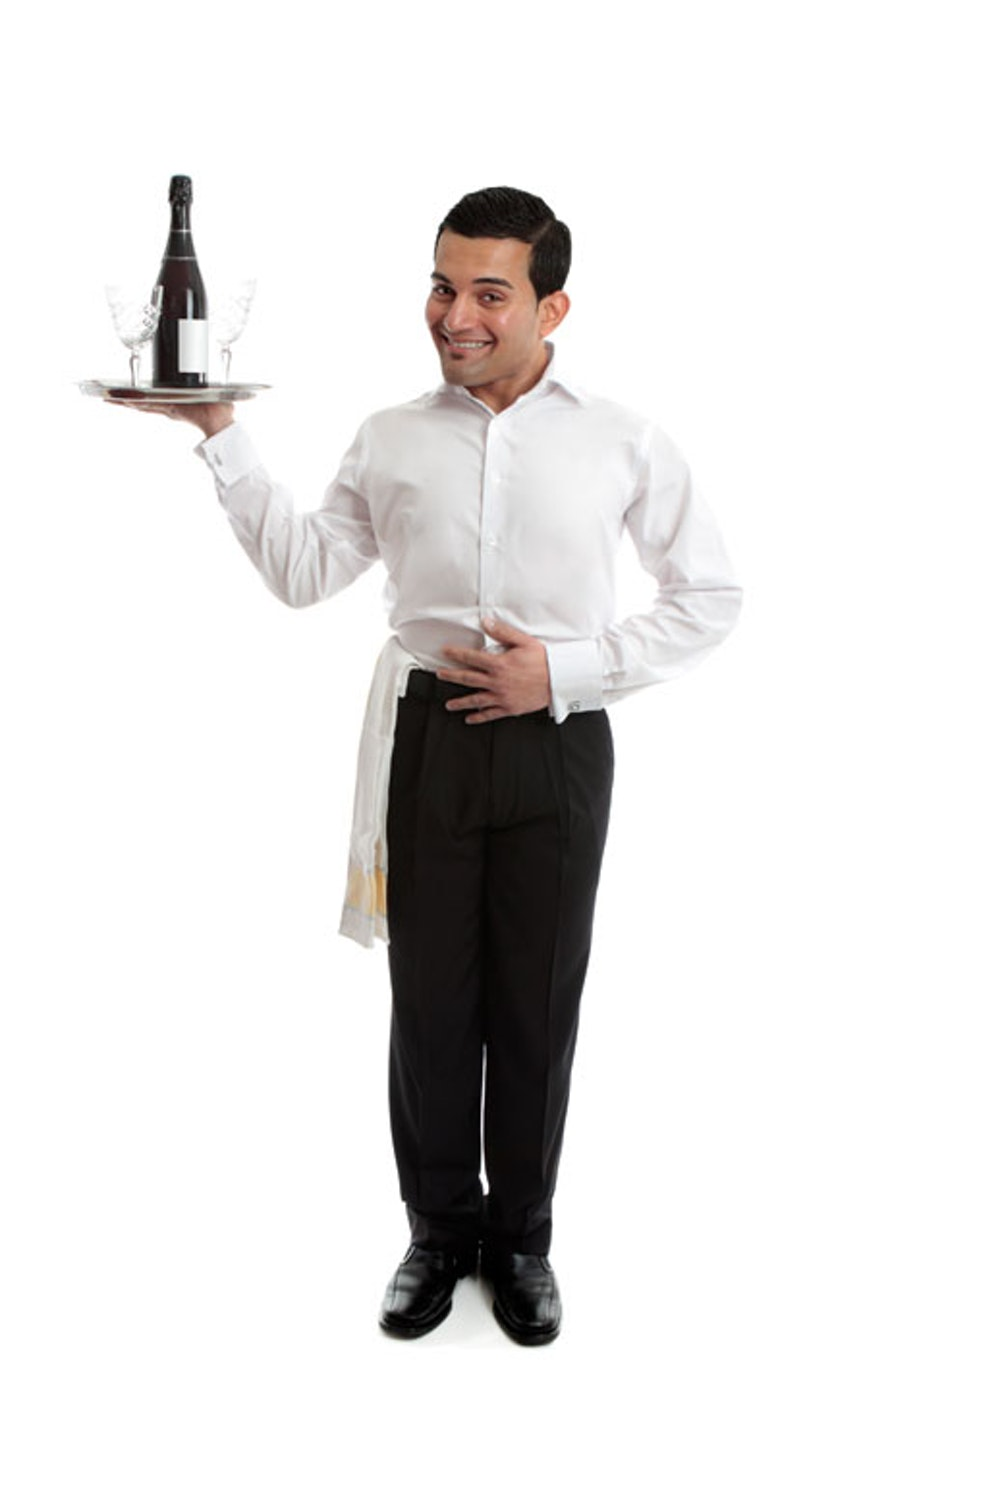 Make the most of your sommelier